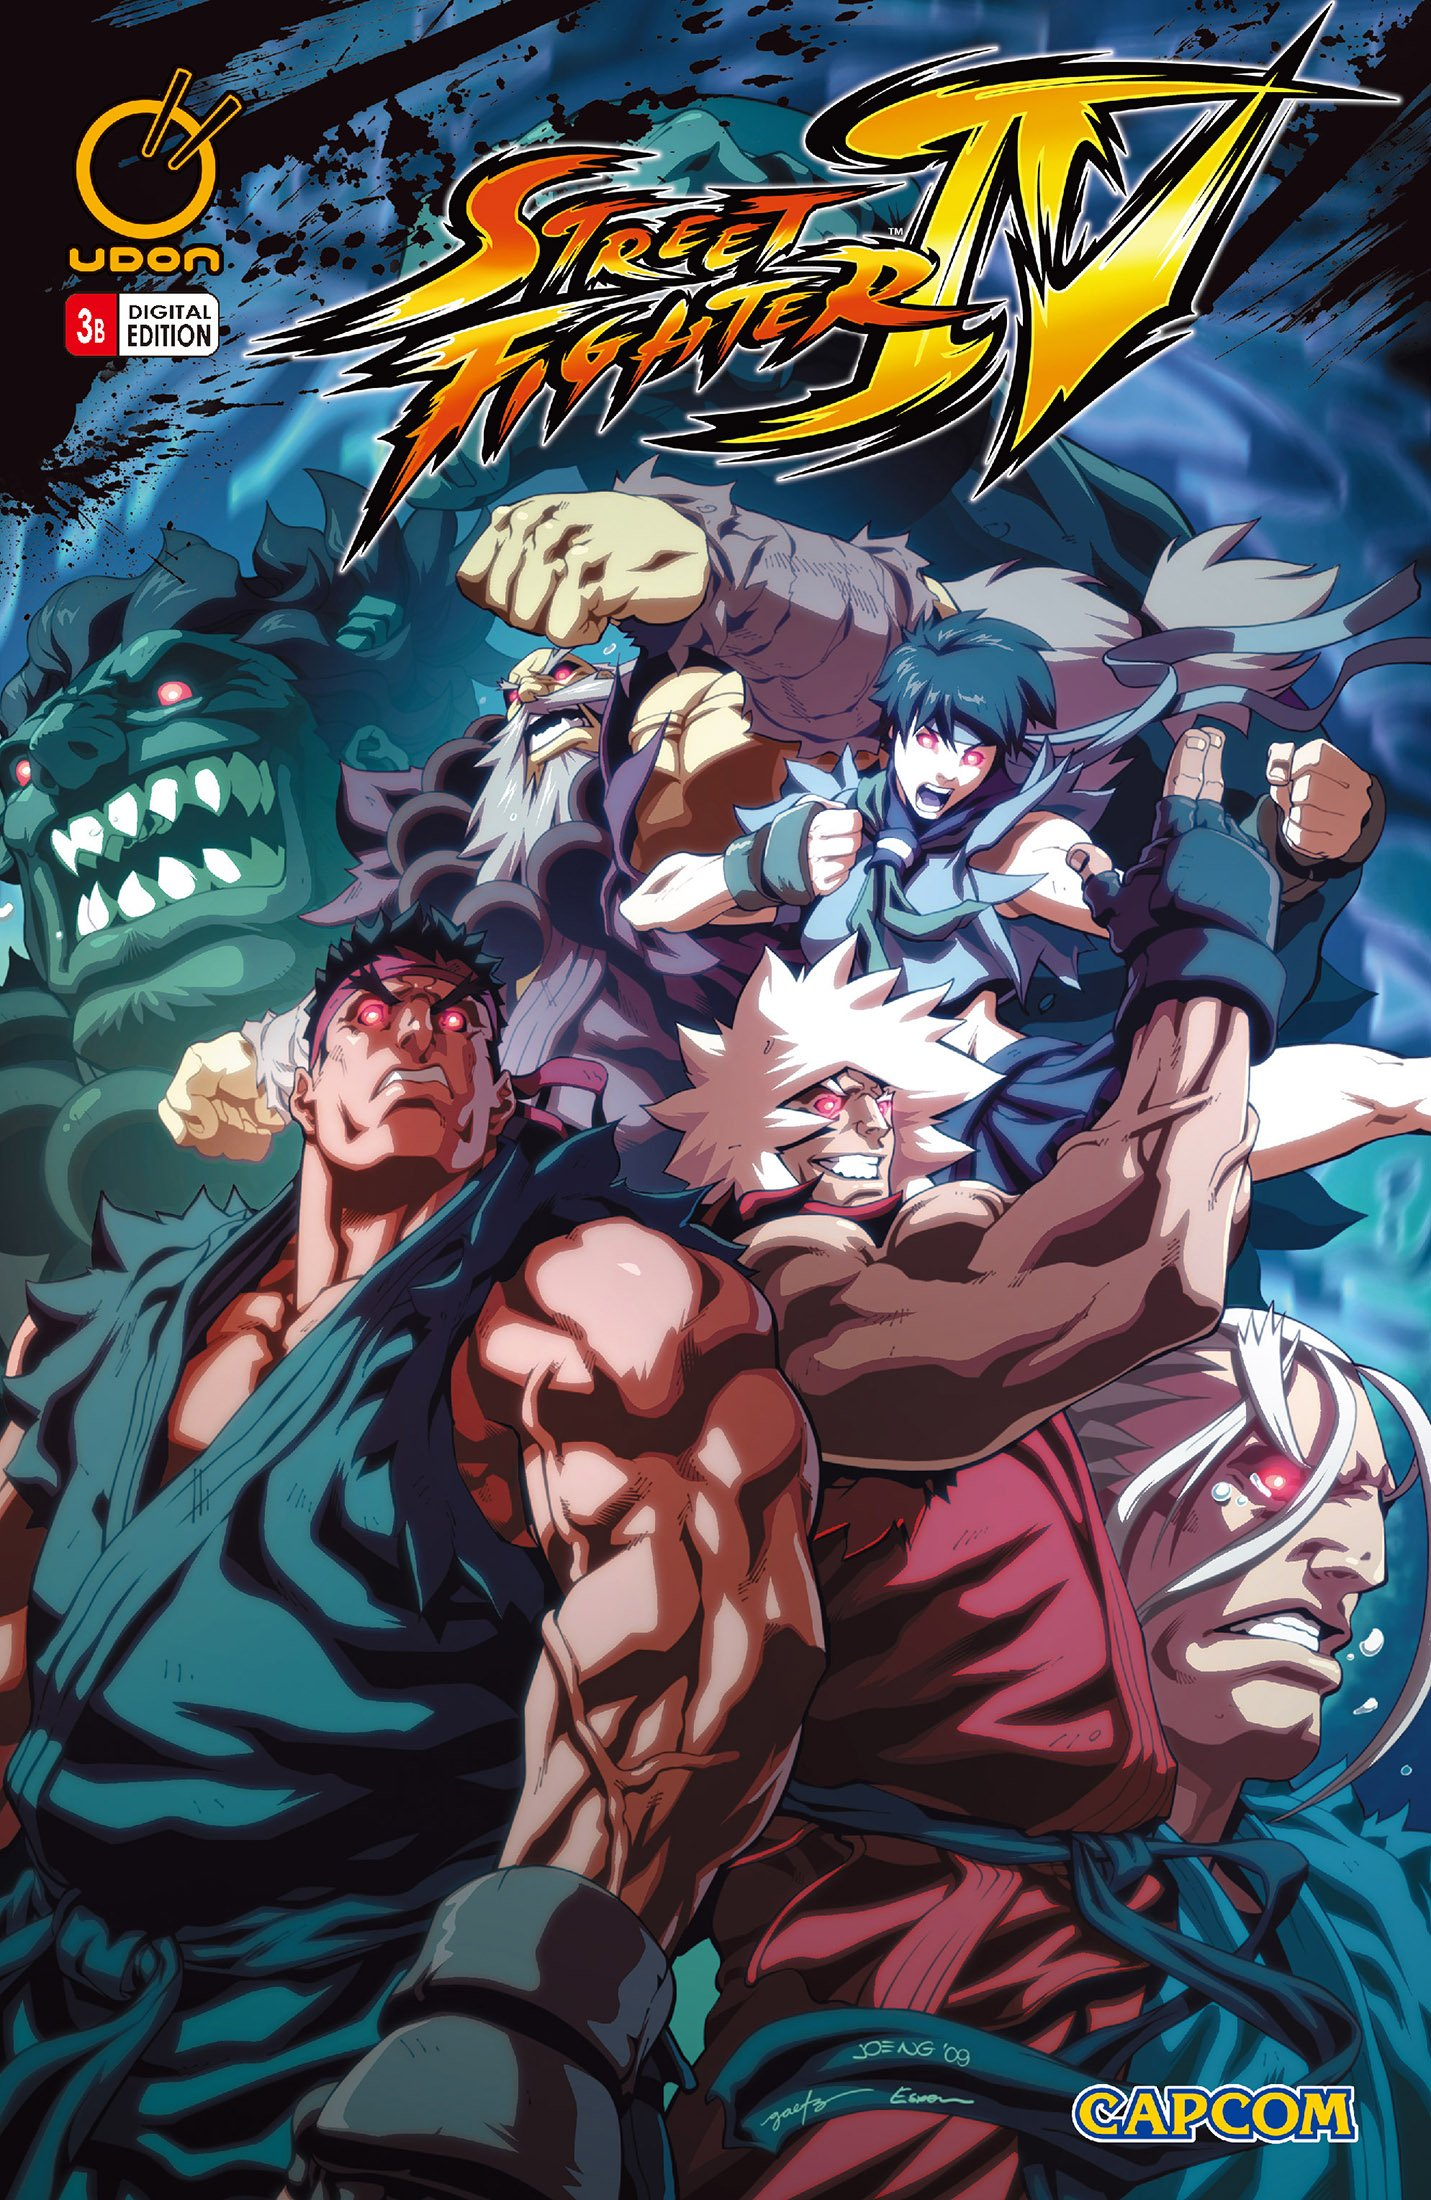 Street Fighter IV 003 (July 2009) (cover b)